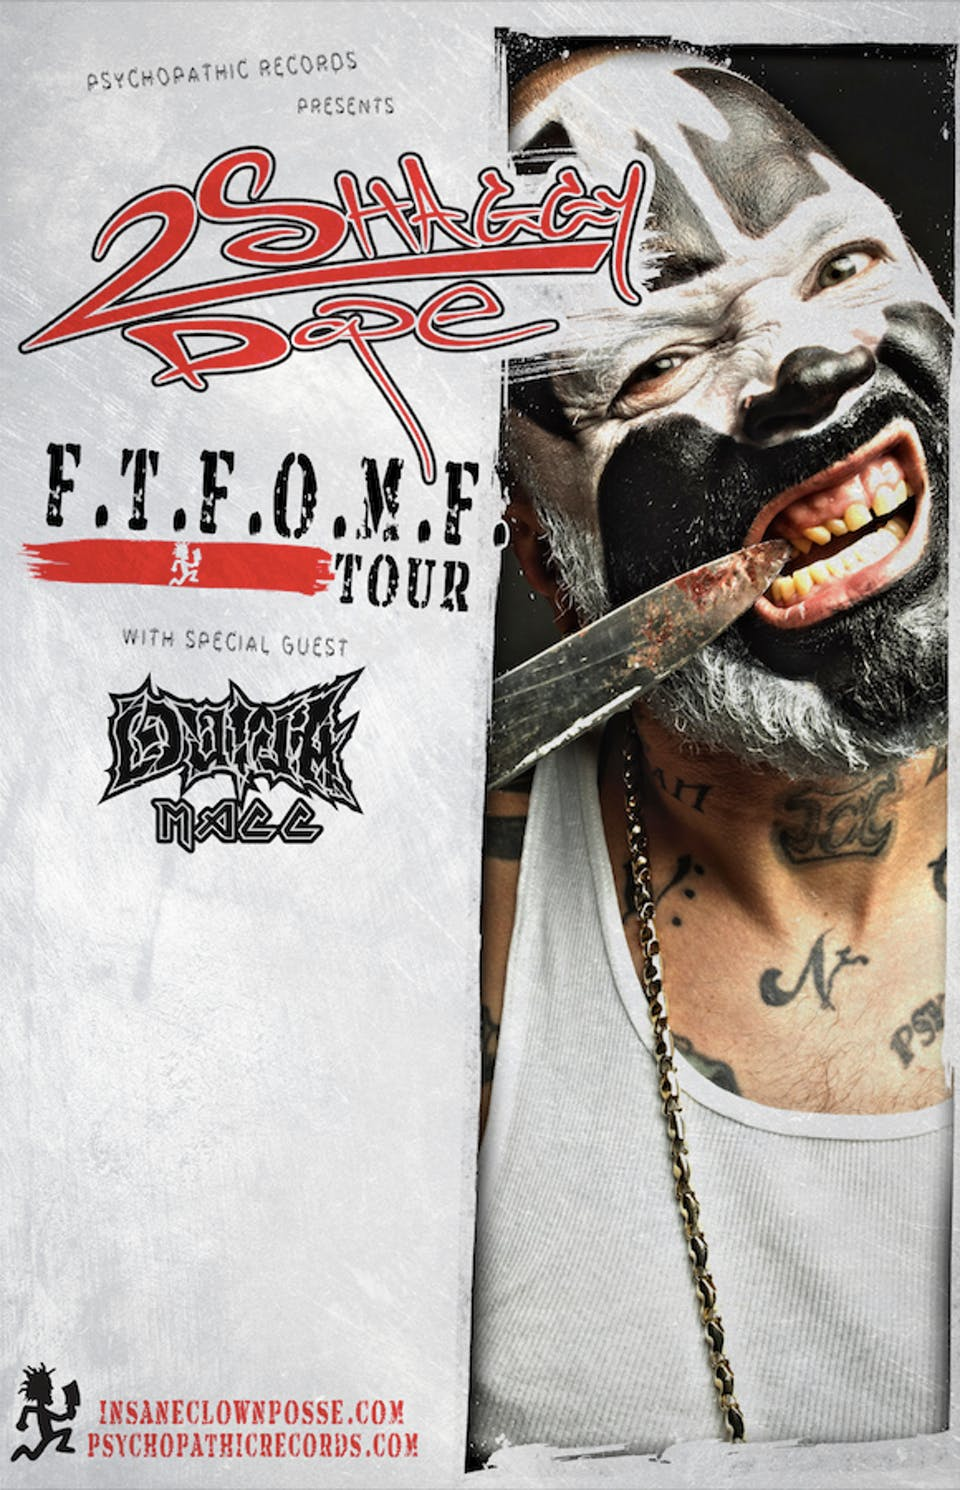 Insane Clown Posse's SHAGGY 2 DOPE with special guests Ouija Macc and more